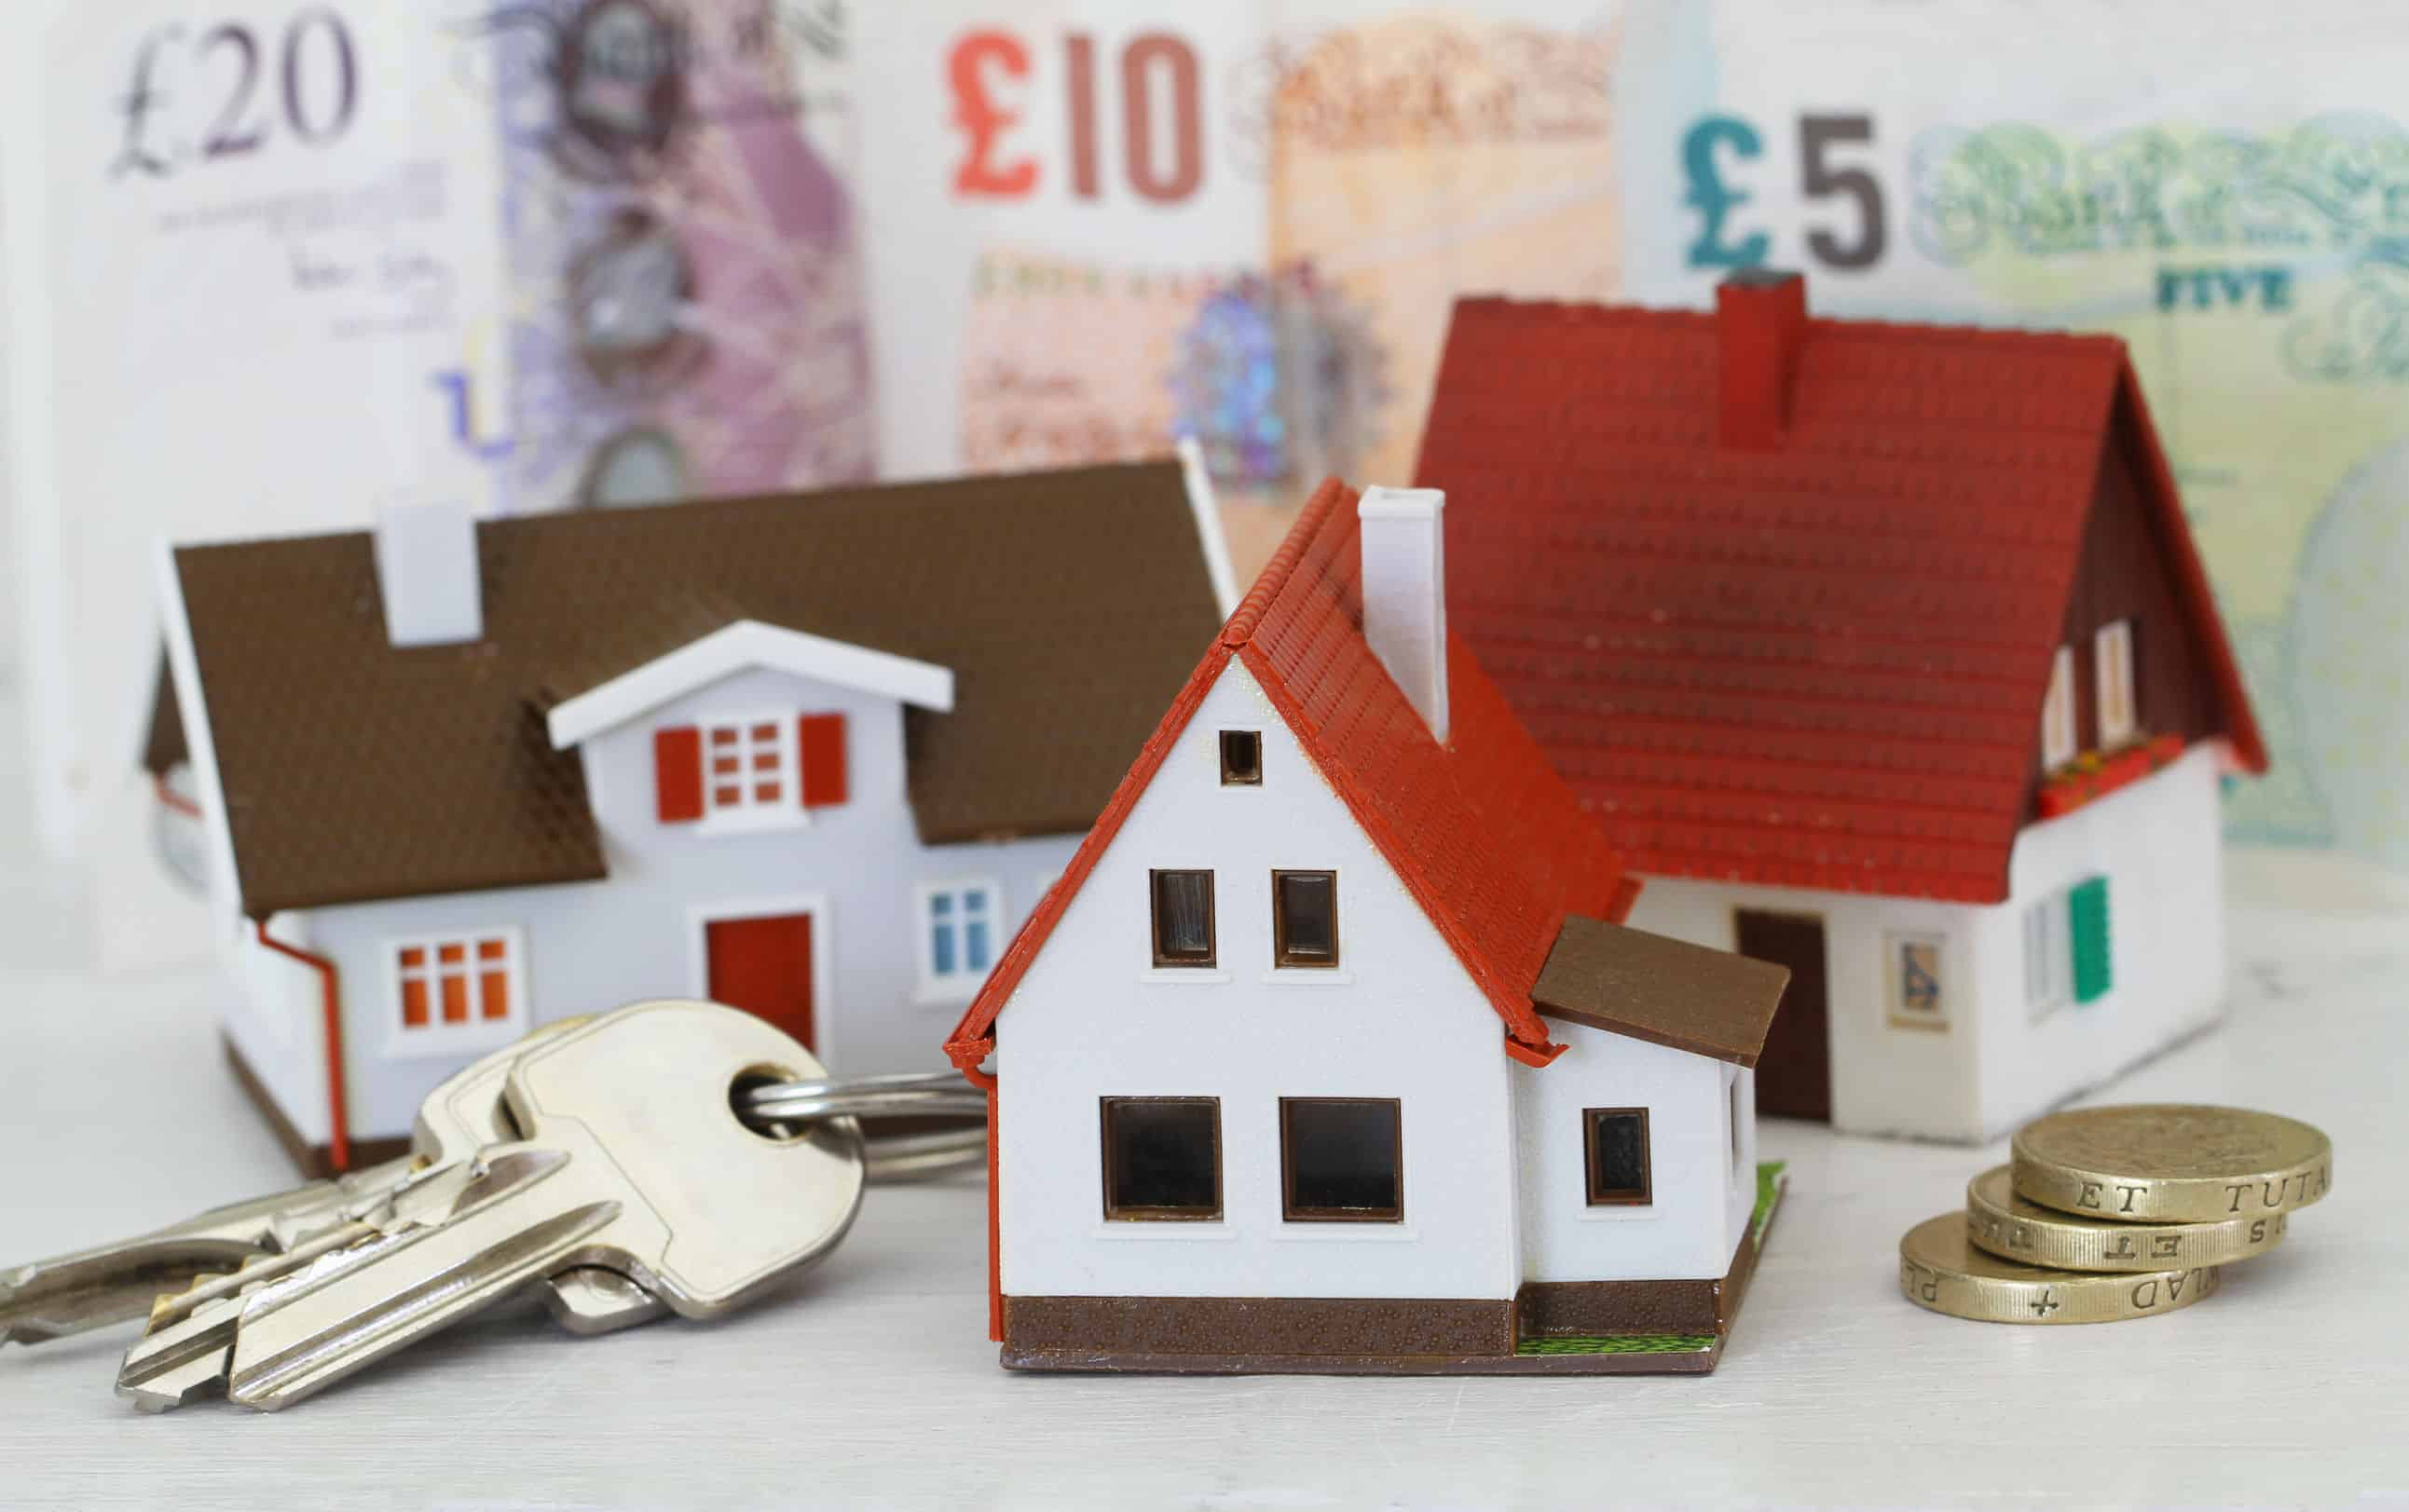 45229622 - model houses and keys with british pounds in the background